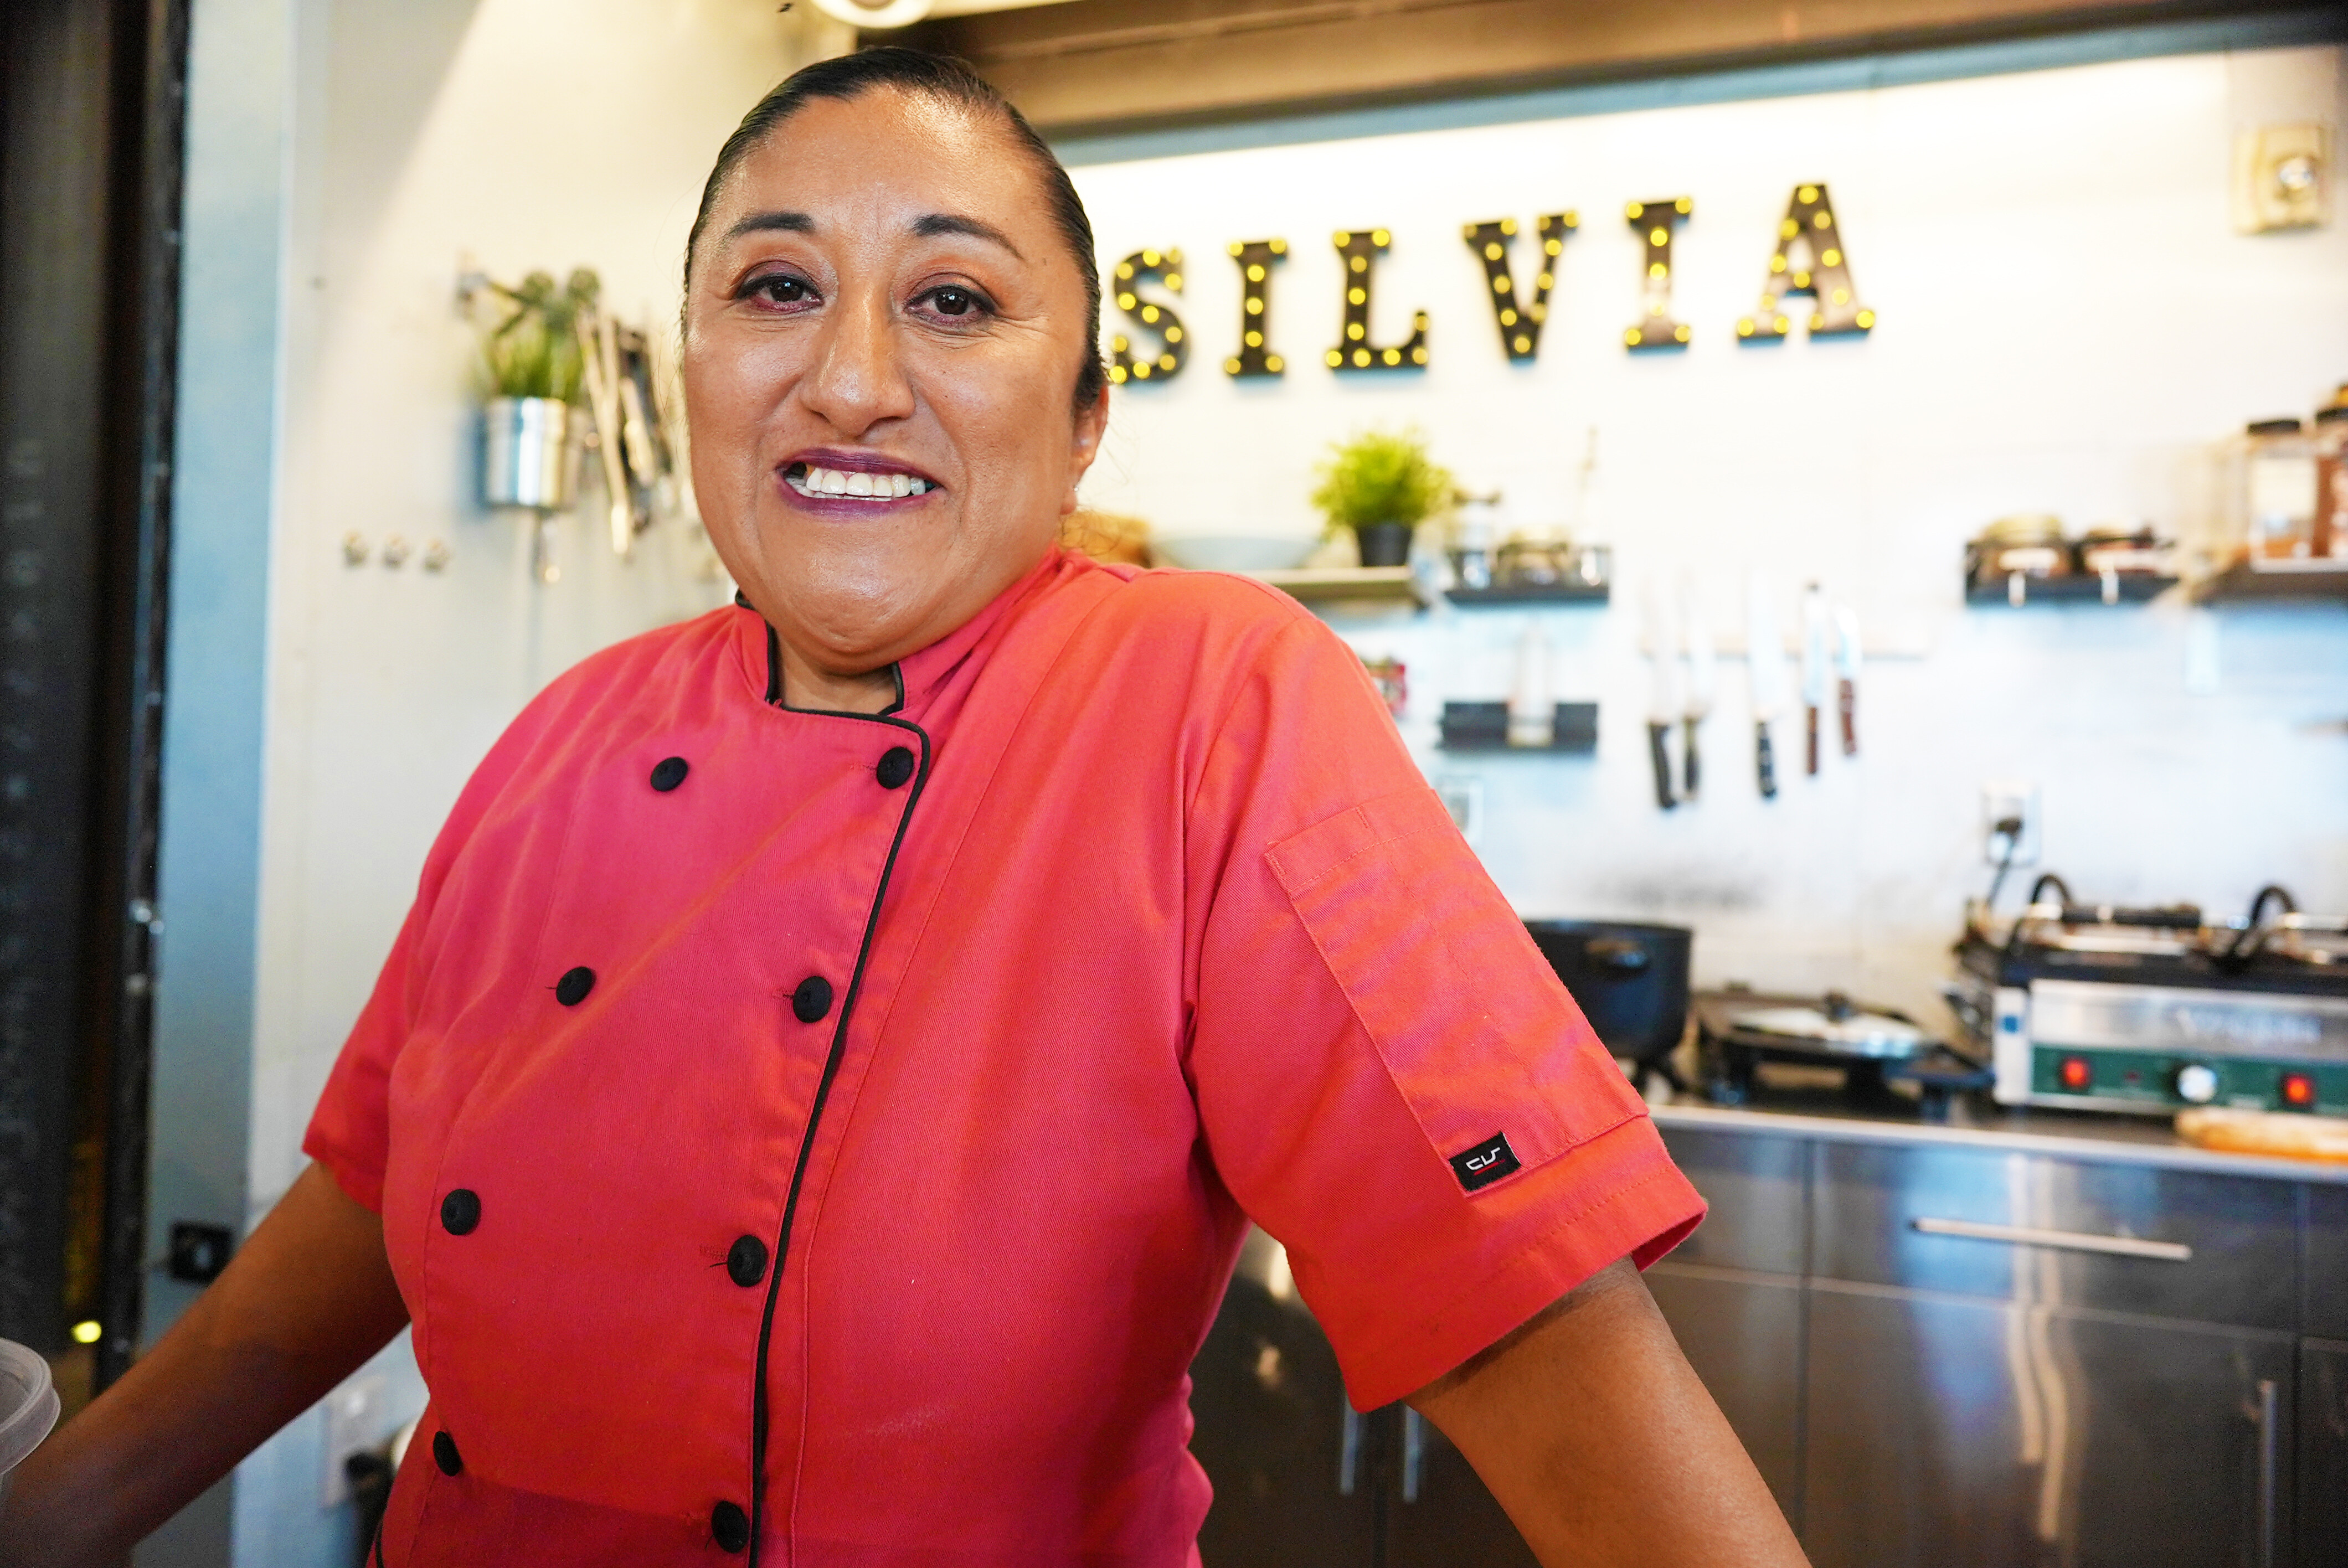 The pandemic has hit the restaurant business hard. That's creating an opportunity for some immigrant women in Denver